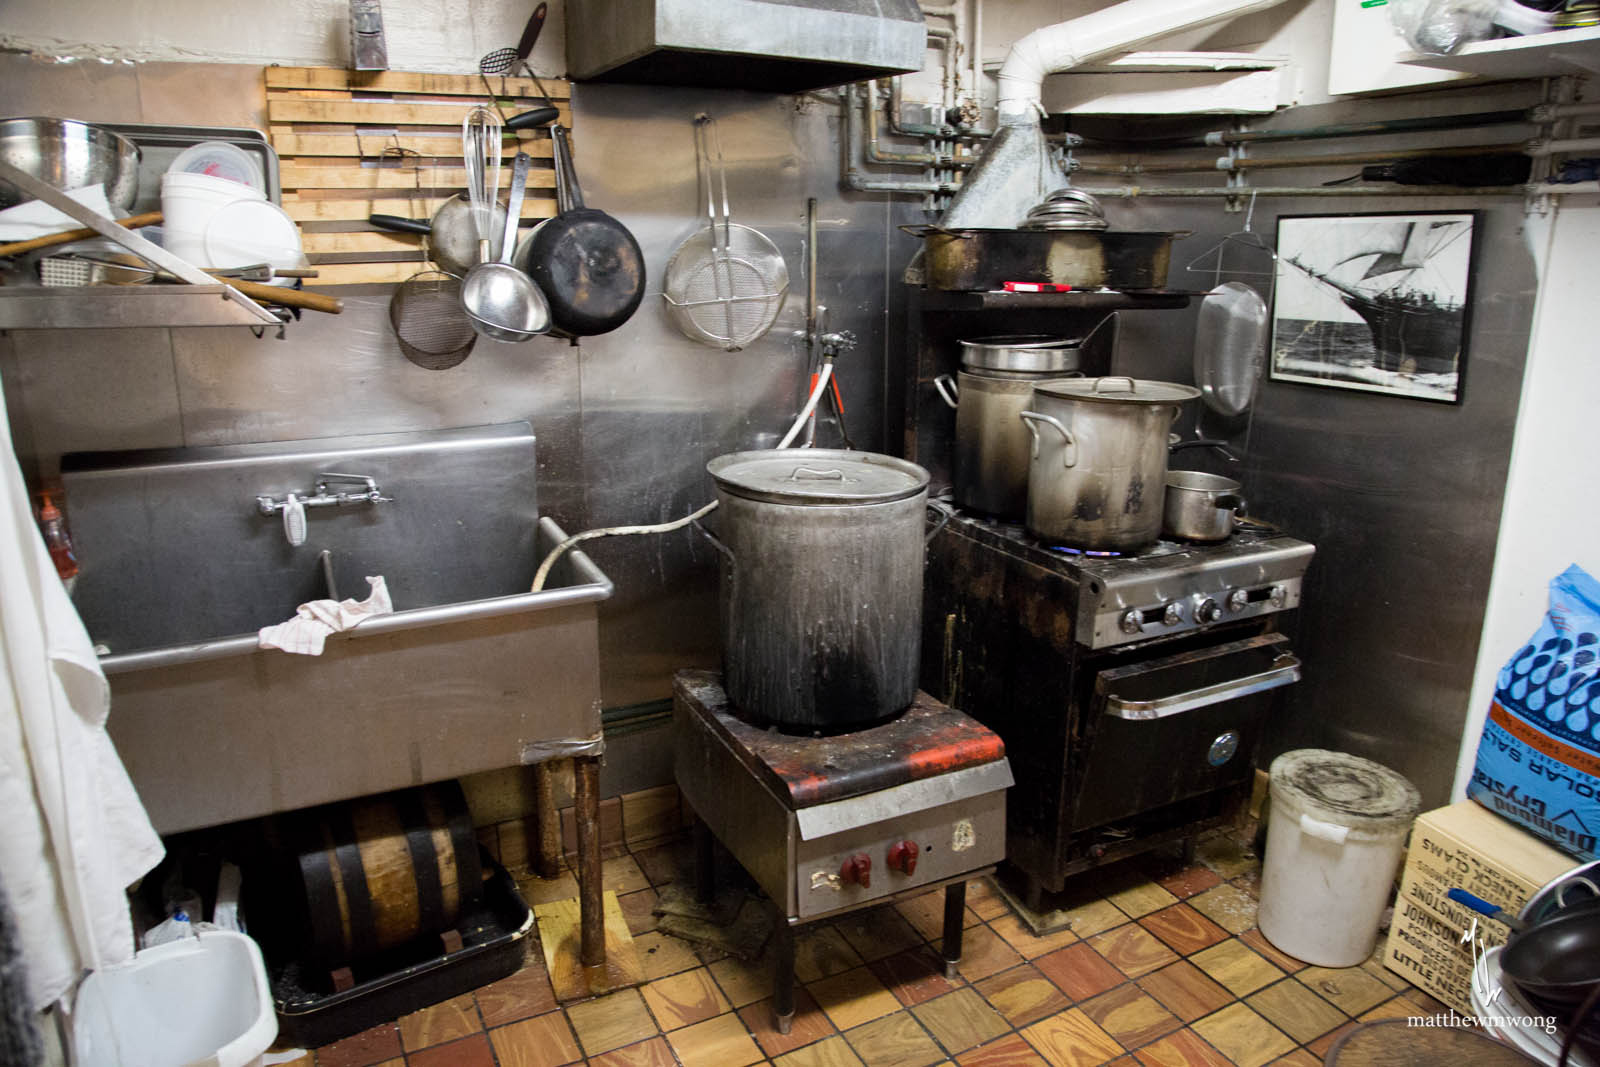 Kitchen at Swan Oyster Depot